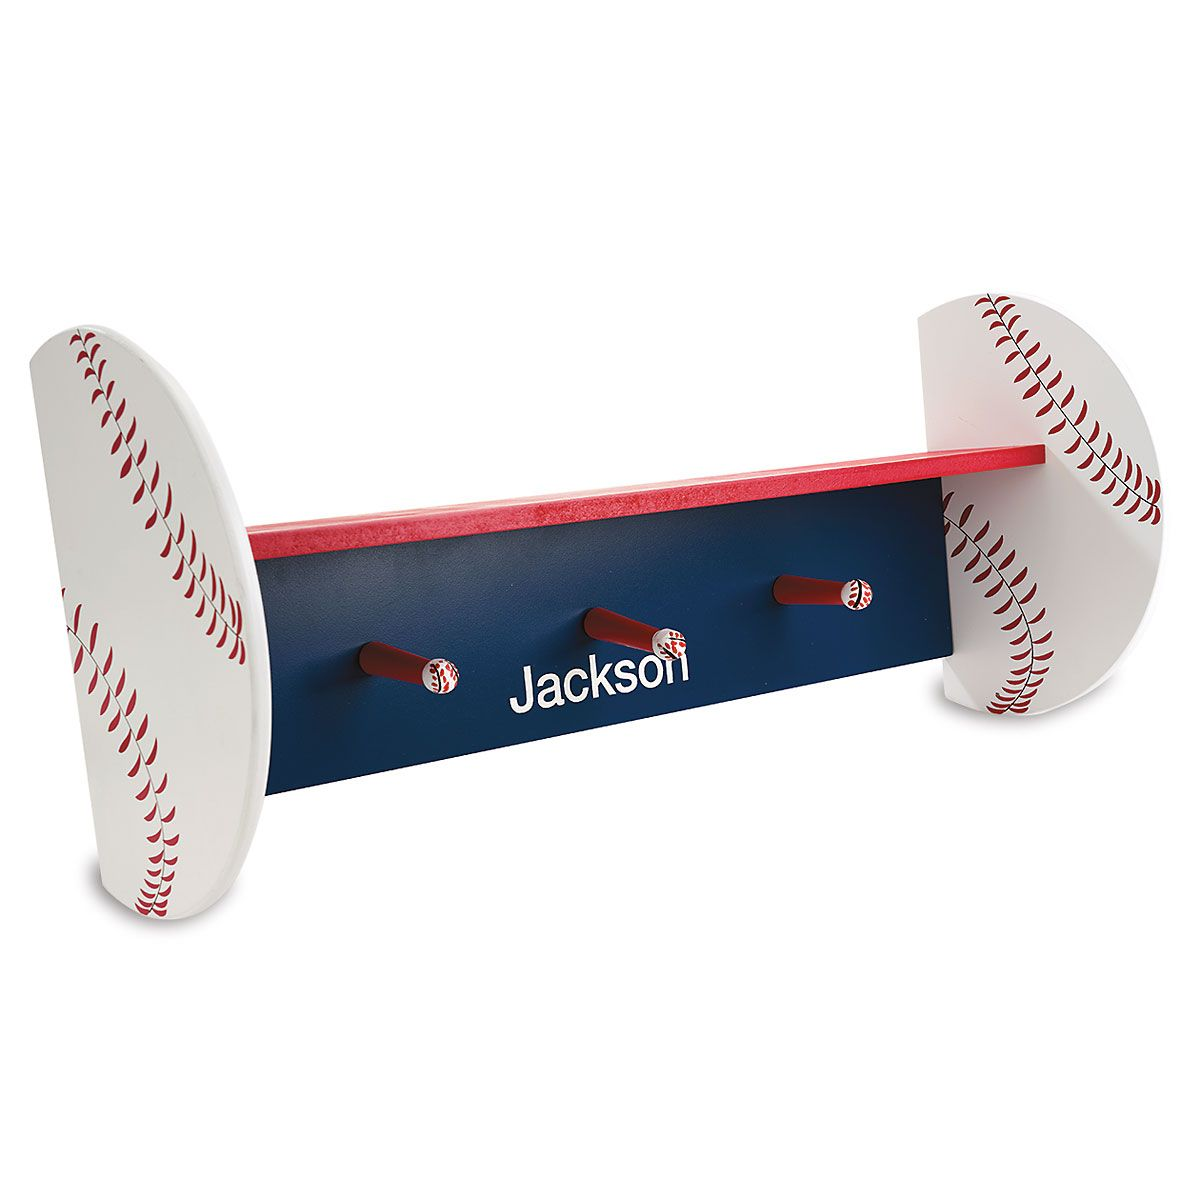 Personalized Baseball Shelf with Pegs